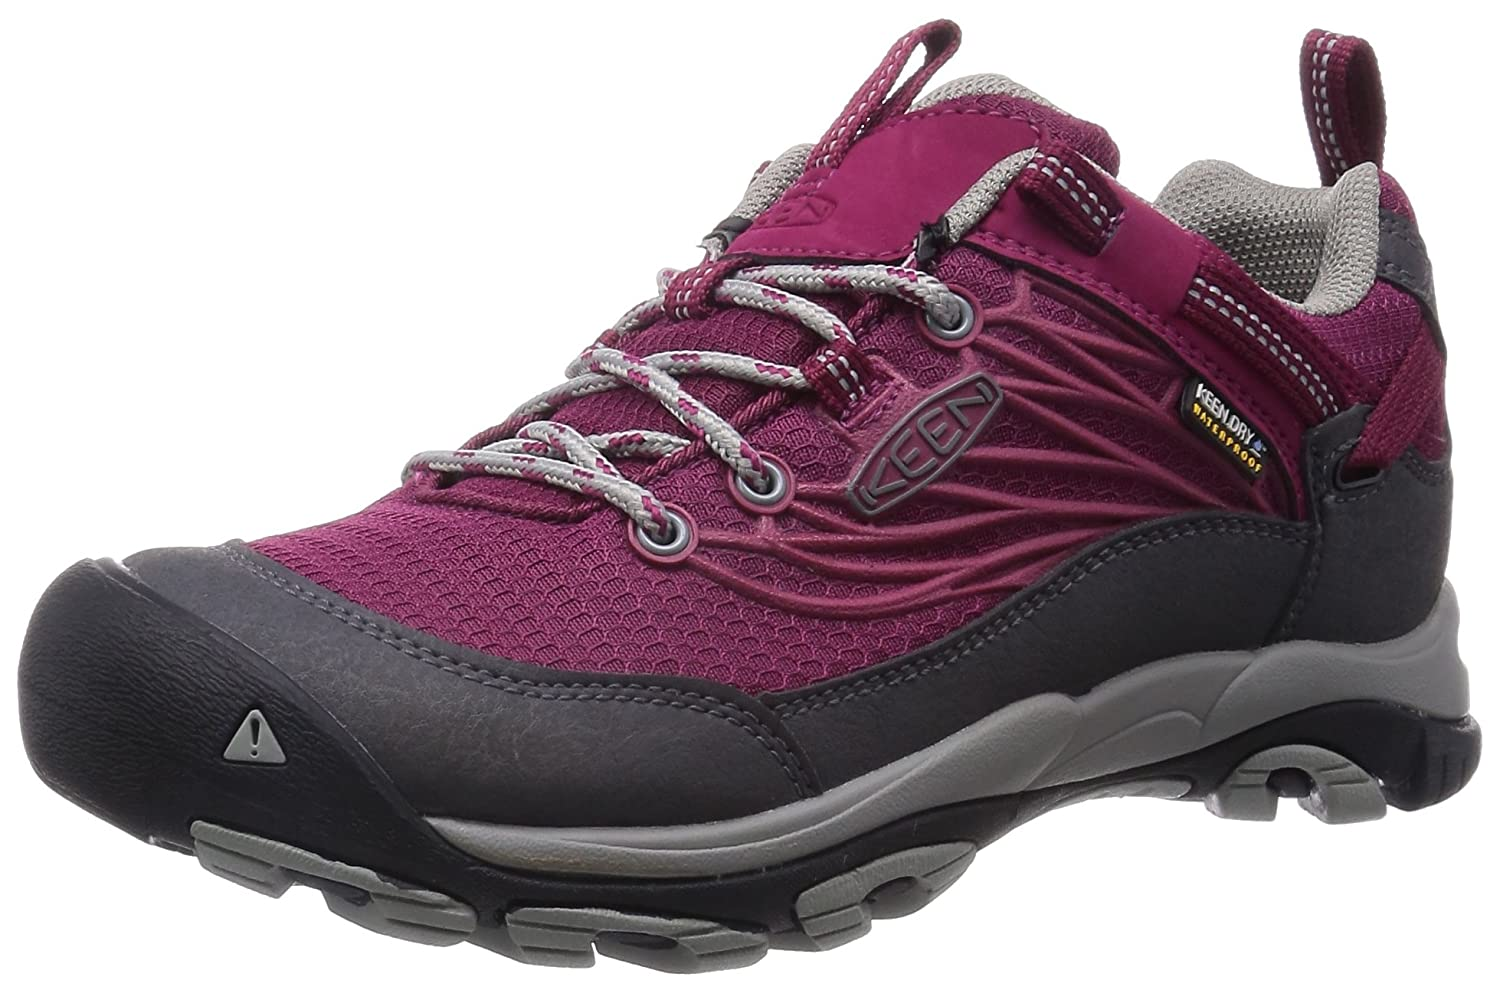 KEEN Women's Saltzman Waterproof Hiking Shoe B00RLVTJSK 5 B(M) US|Beet Red/Neutral Gray